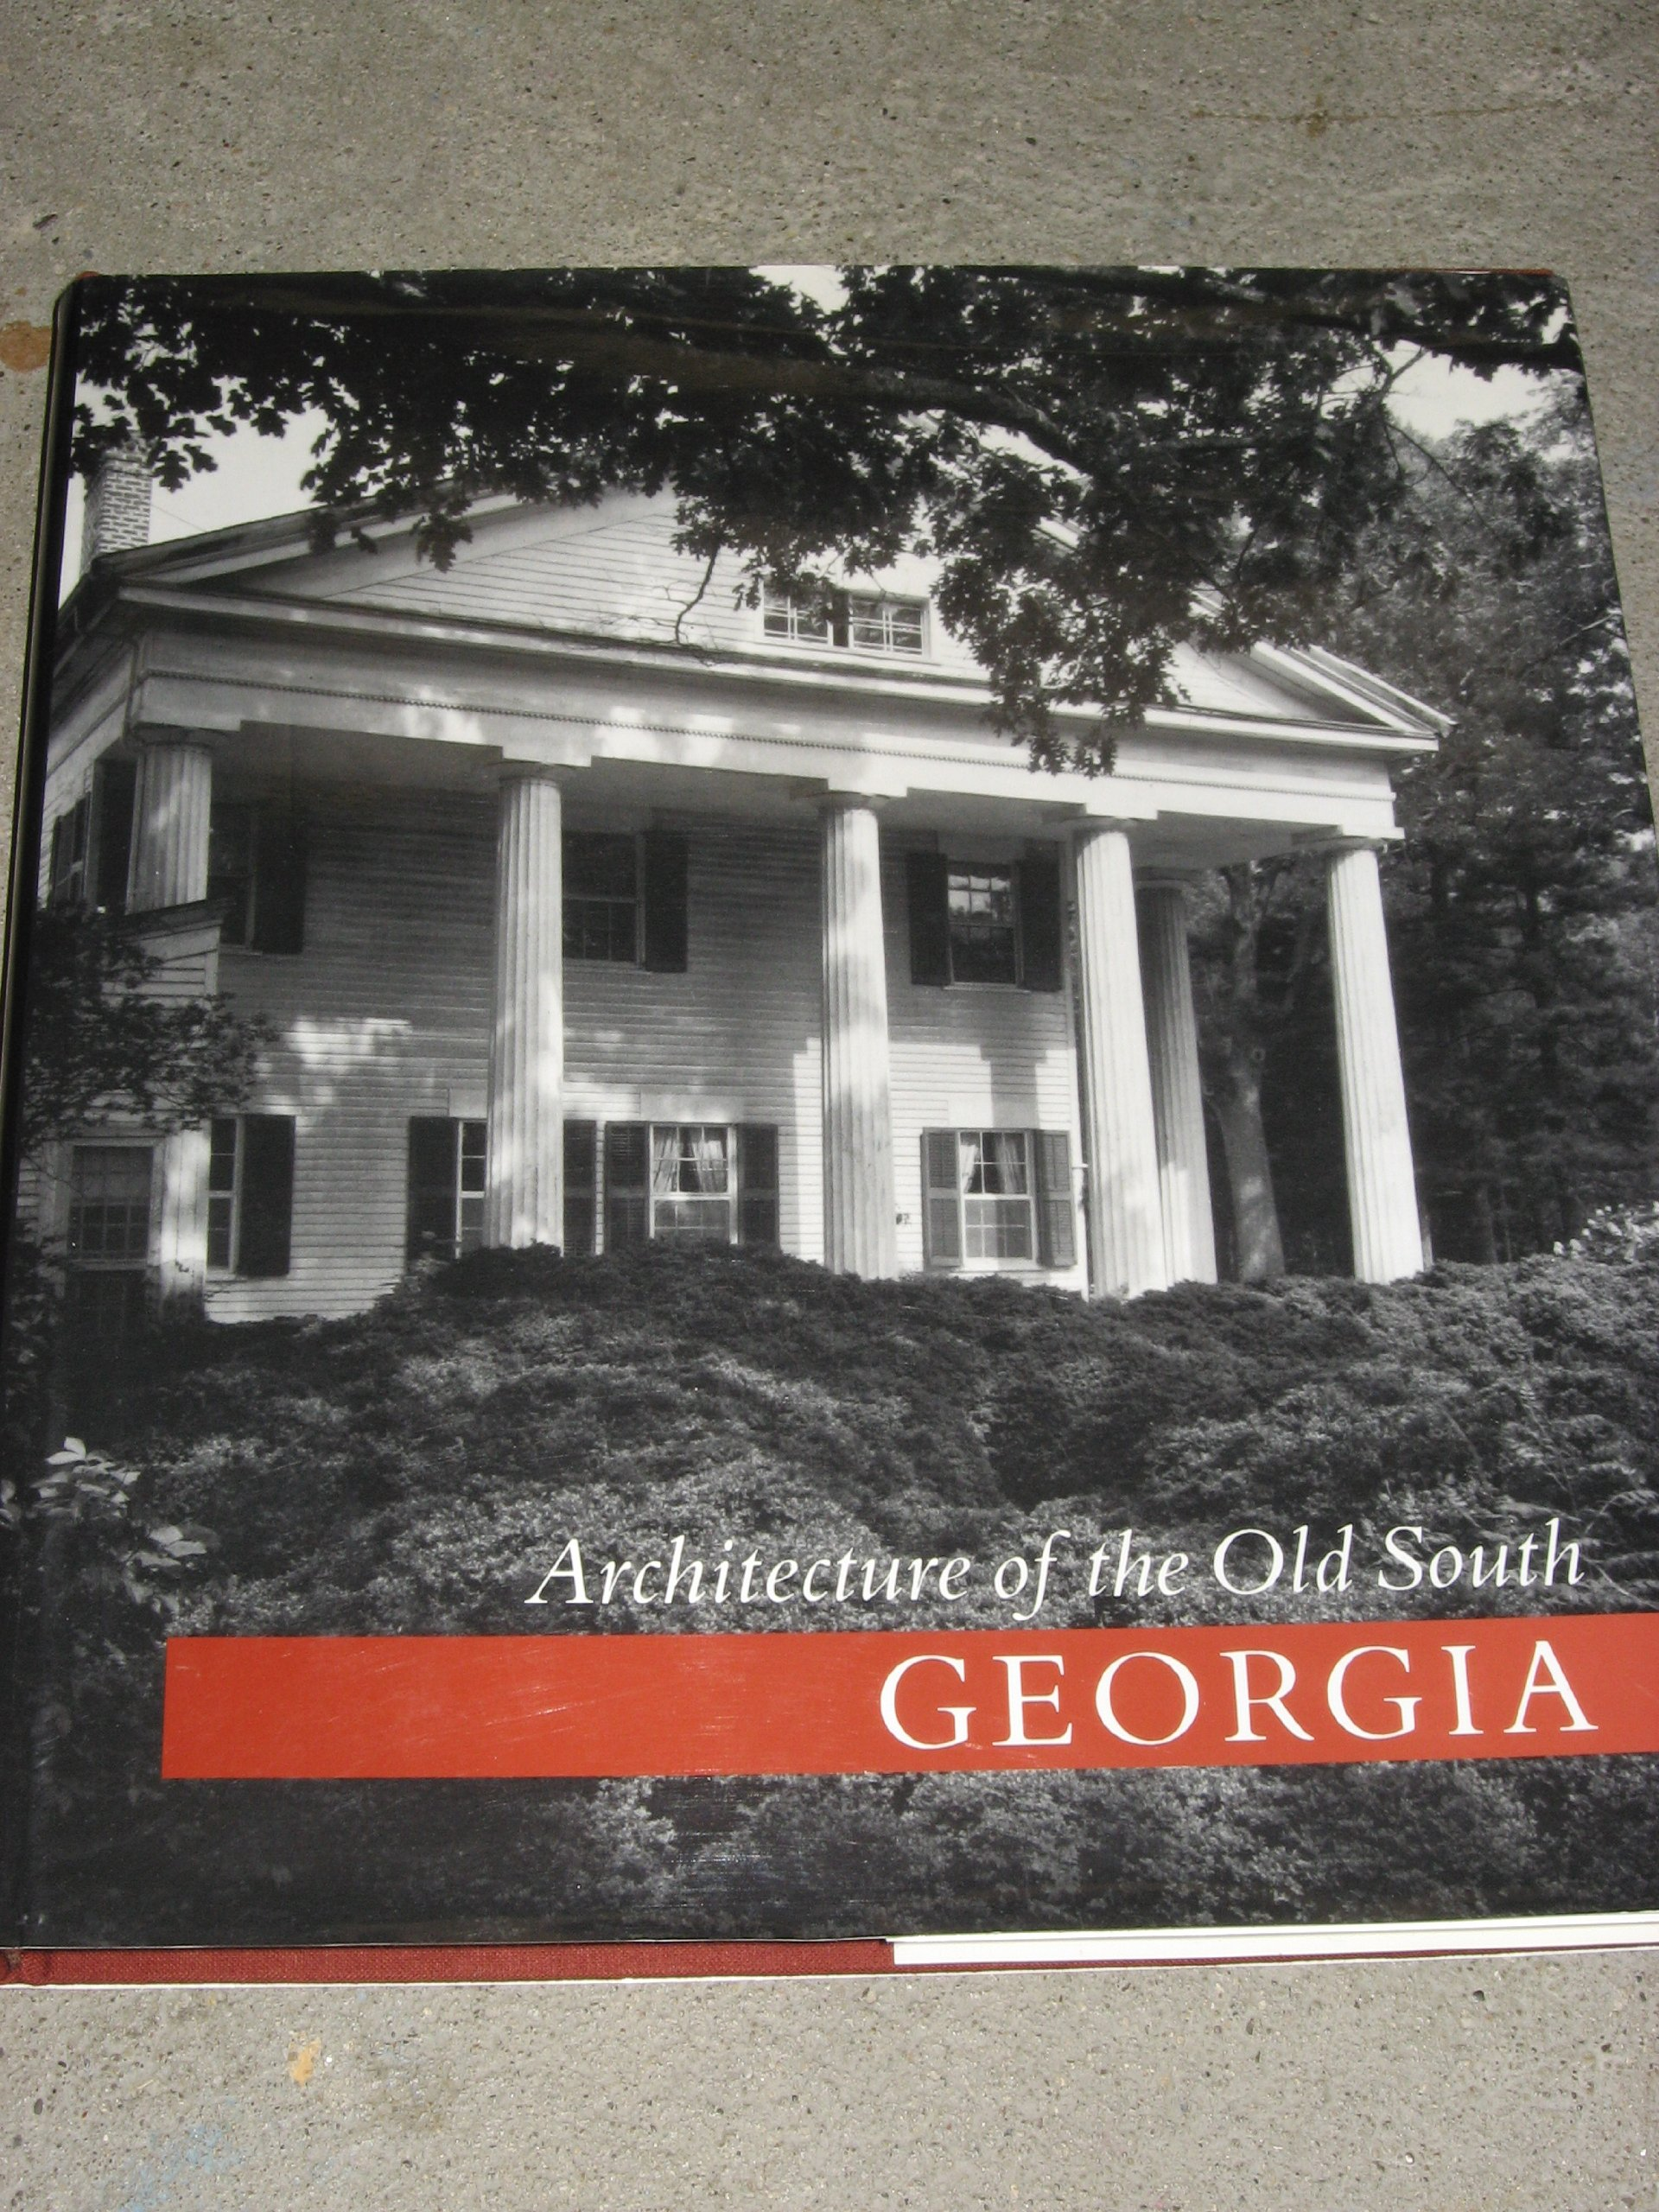 Architecture of the old south georgia mills lane van jones martin architecture of the old south georgia mills lane van jones martin 9781558590212 amazon books fandeluxe Image collections